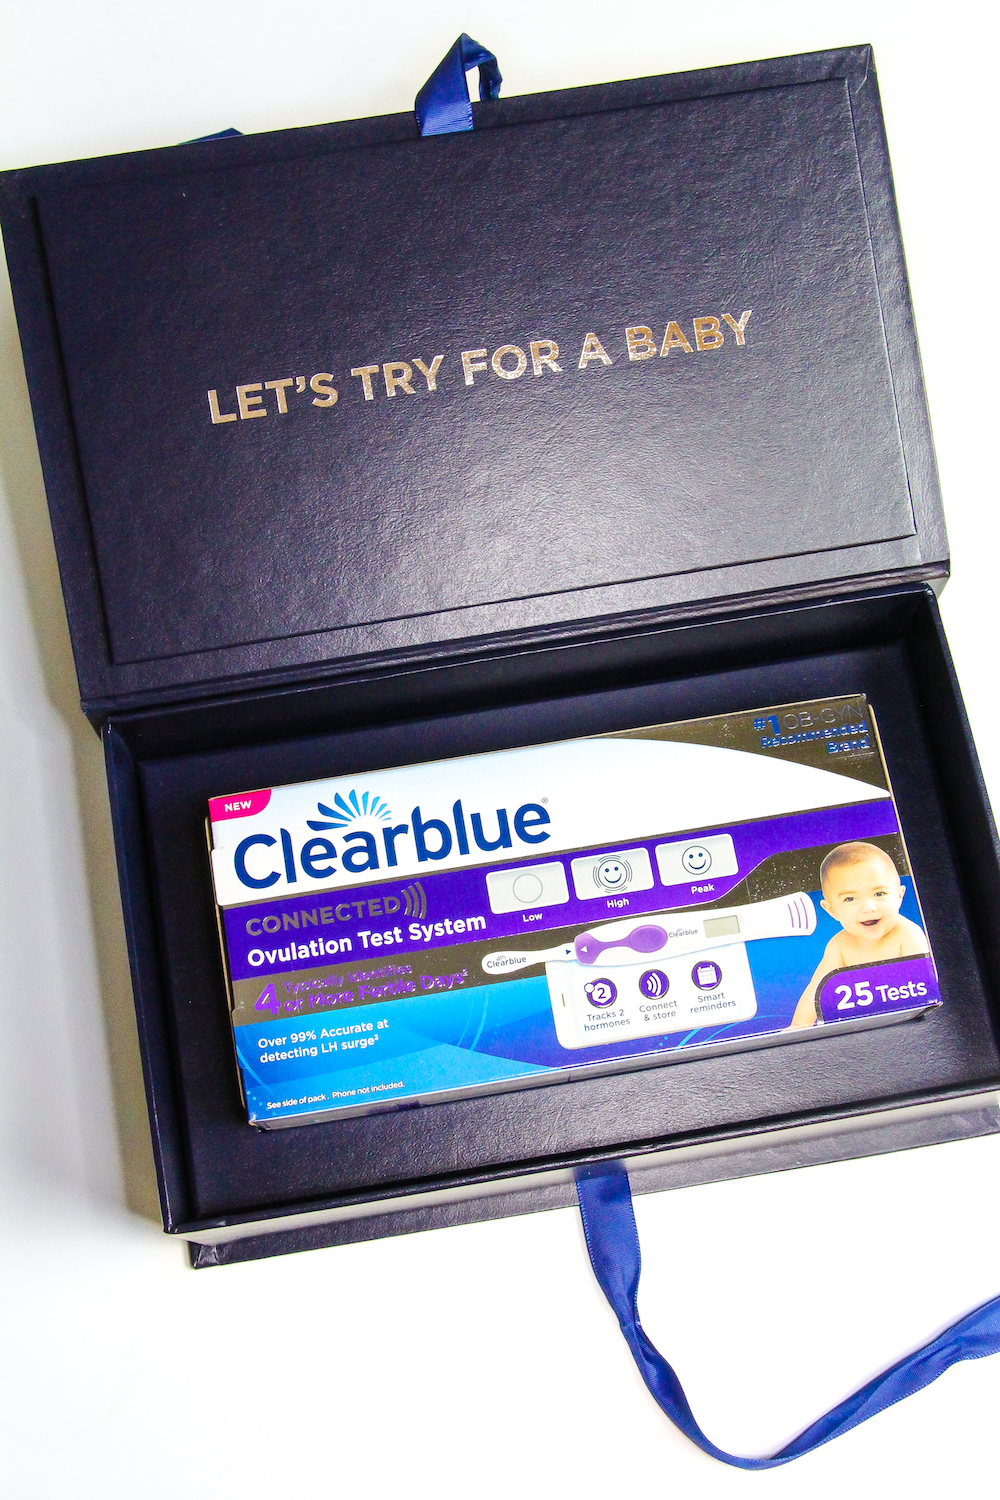 How were making our family planning easier brite and bubbly the system comes with a wake up stick the first item you see below which allows you to connect the holder to your app via bluetooth 25 foil wrapped test biocorpaavc Choice Image